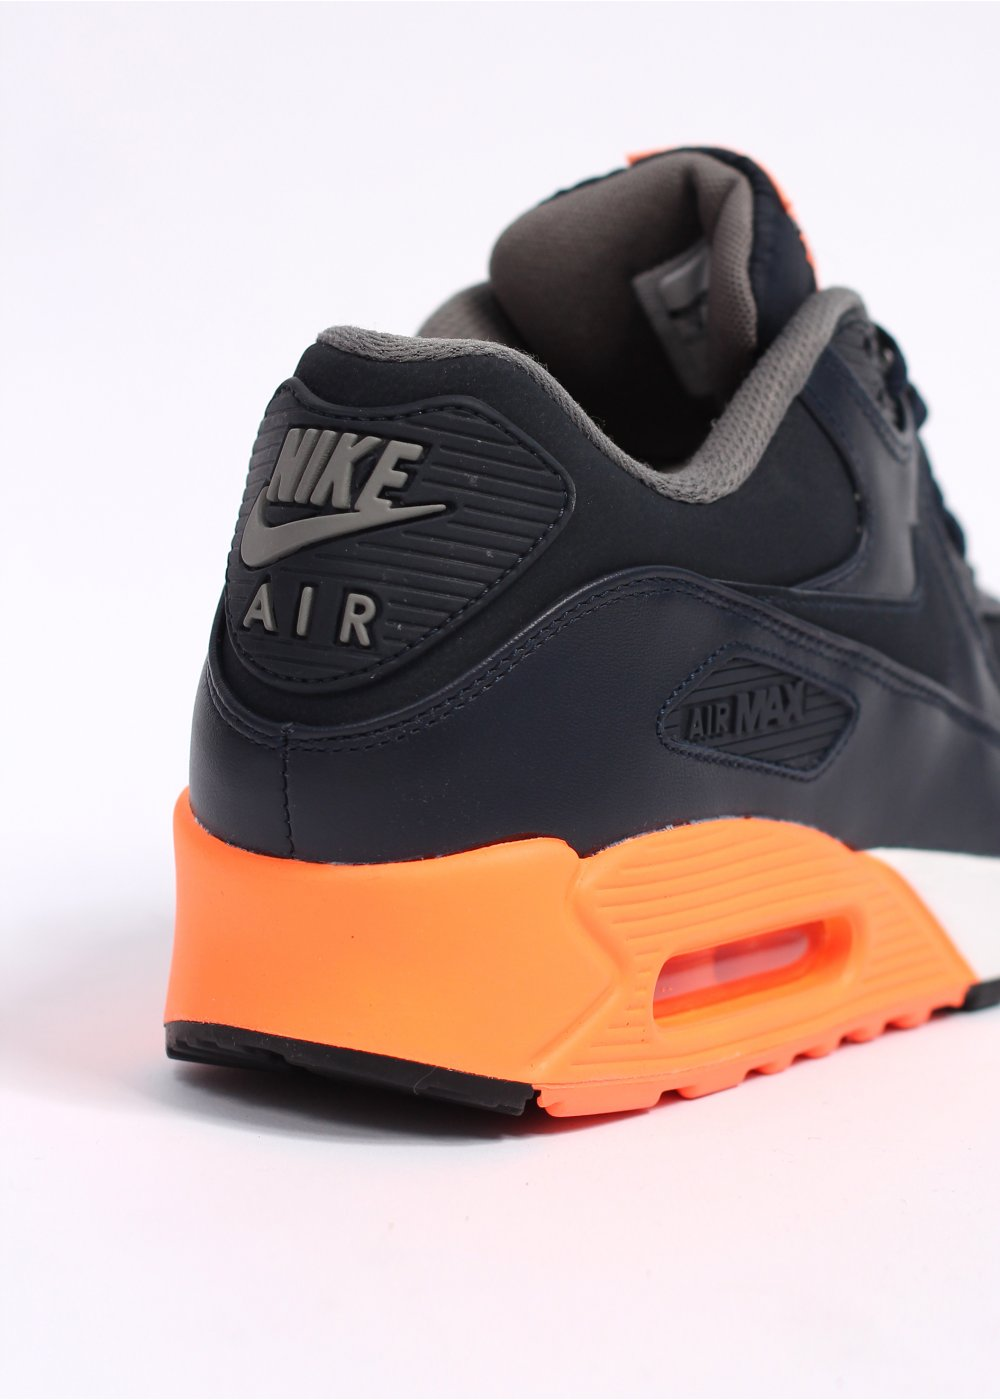 4985821ffcfd3b ... Air Max 90 Premium Trainers - Dark Obsidian   Atomic Orange ...